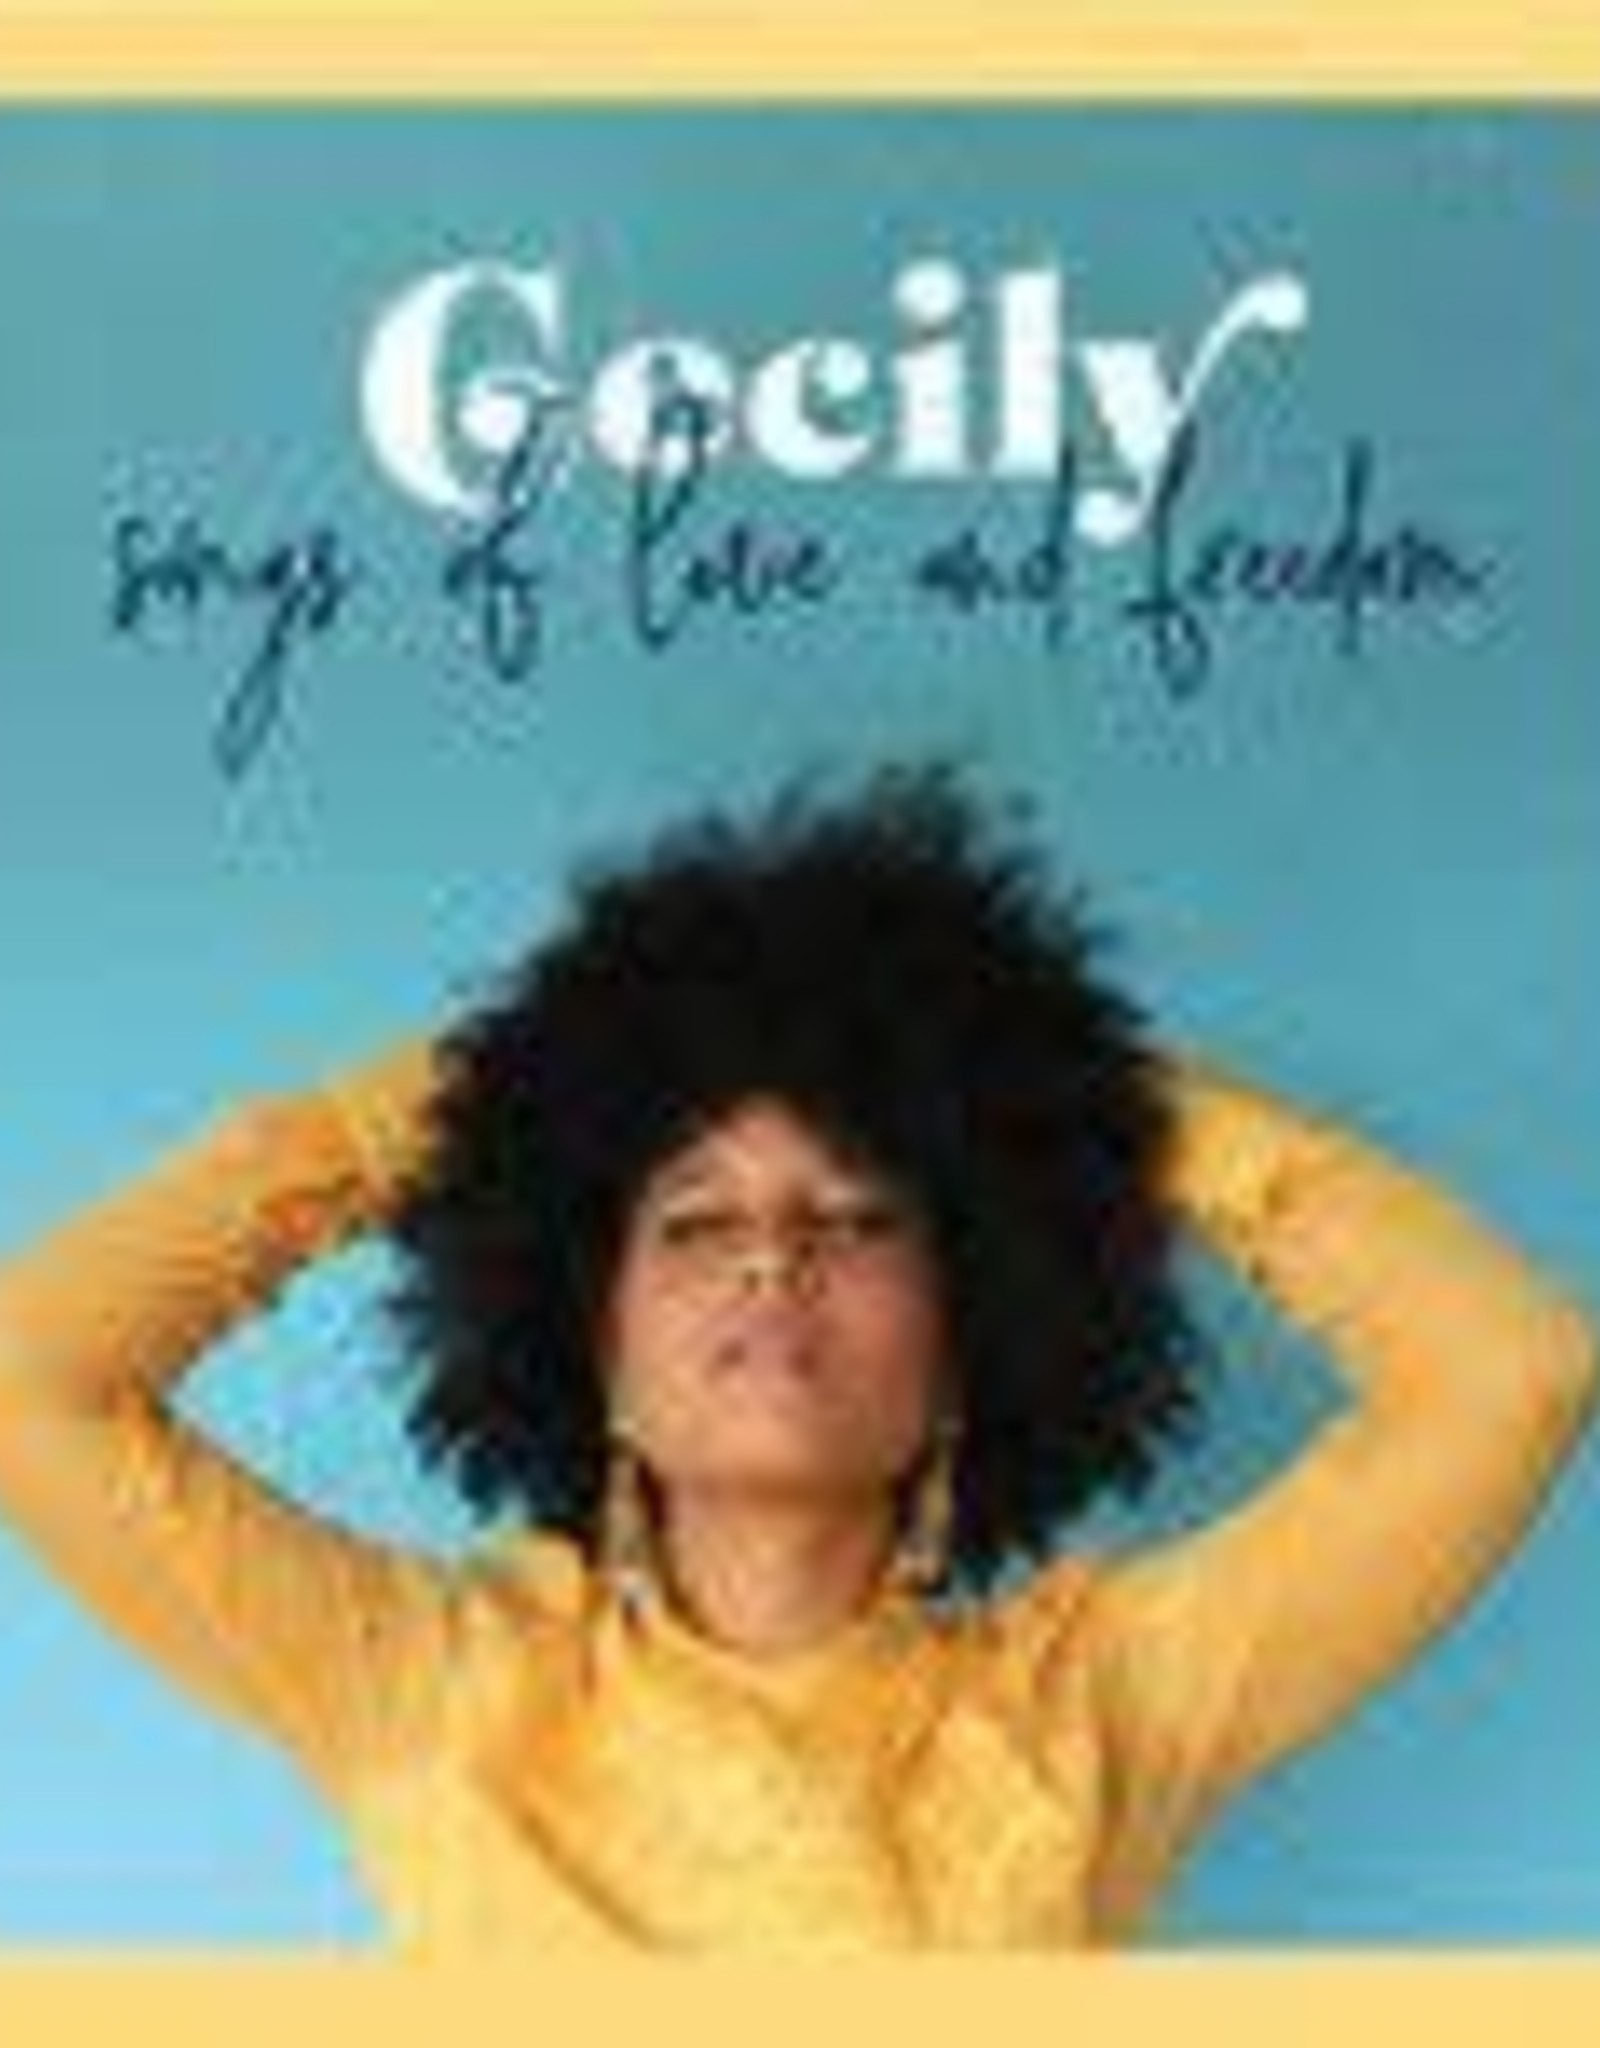 Cecily - Song of Love and Freedom